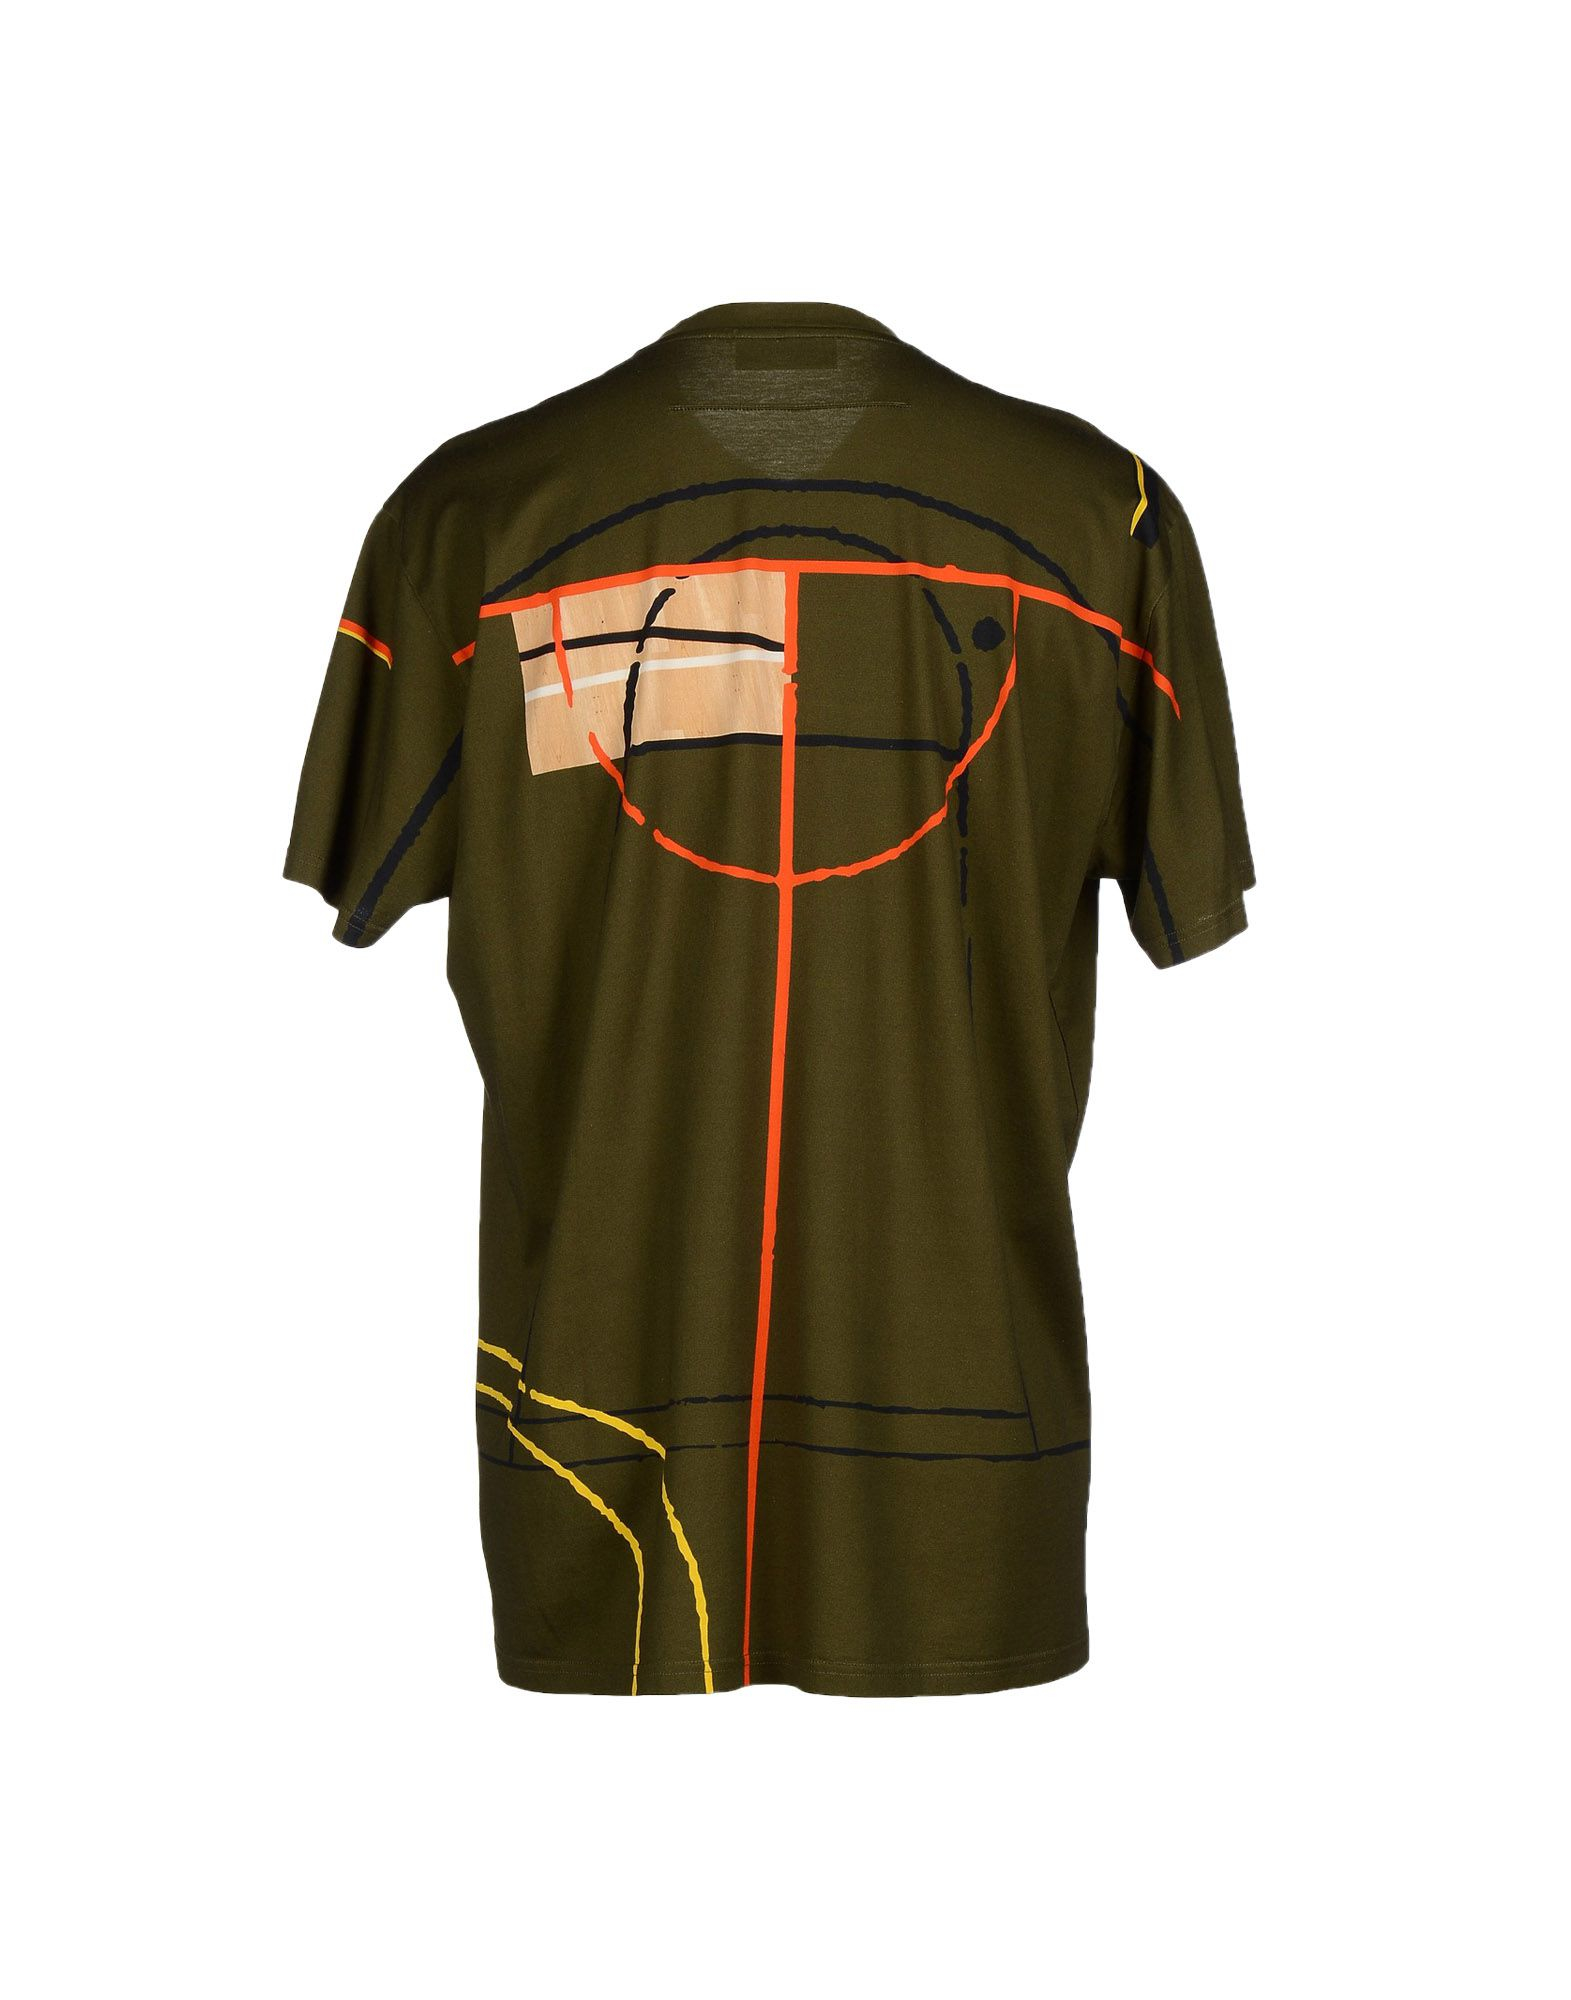 Givenchy t shirt in green for men lyst for Givenchy t shirt man